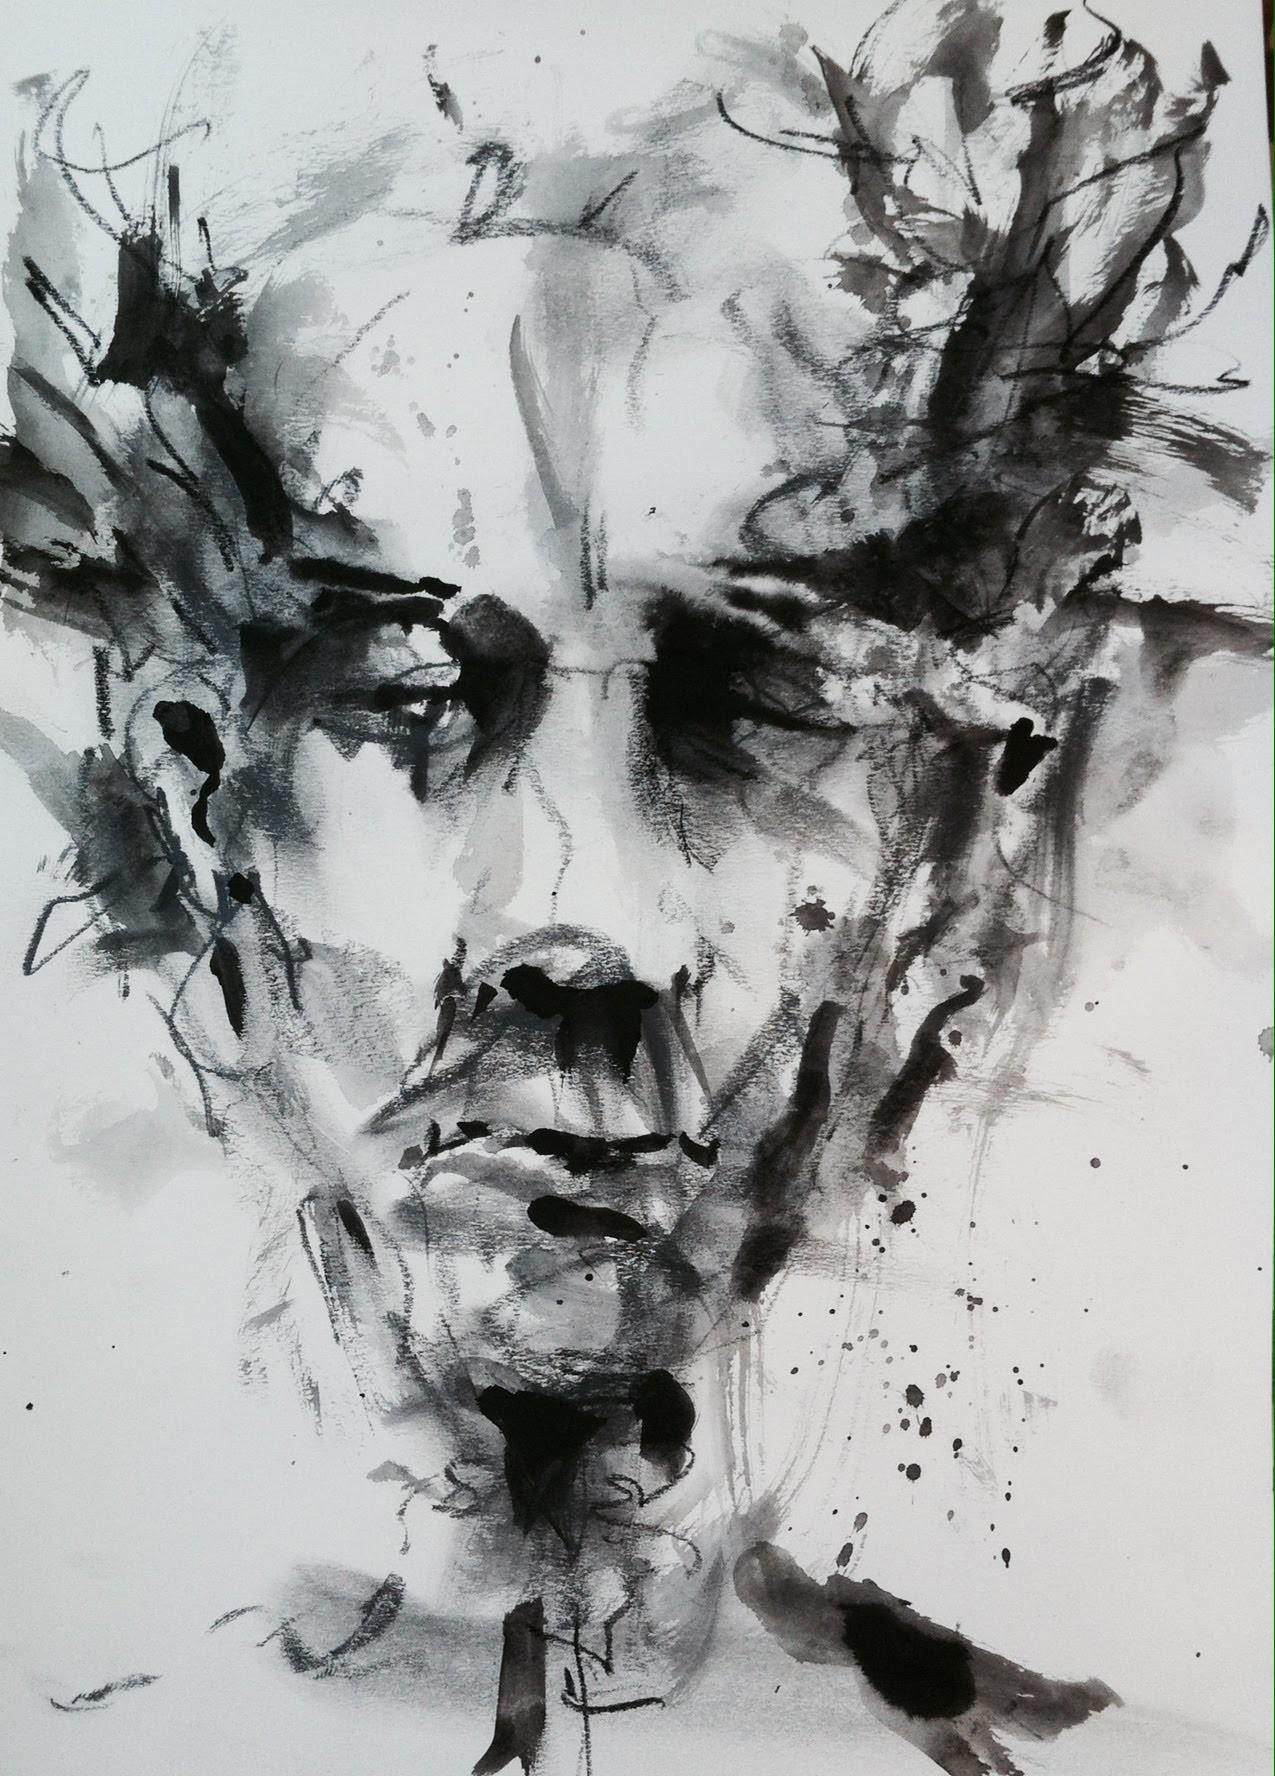 Monochrome Speed Painting Draw Imaginative Face